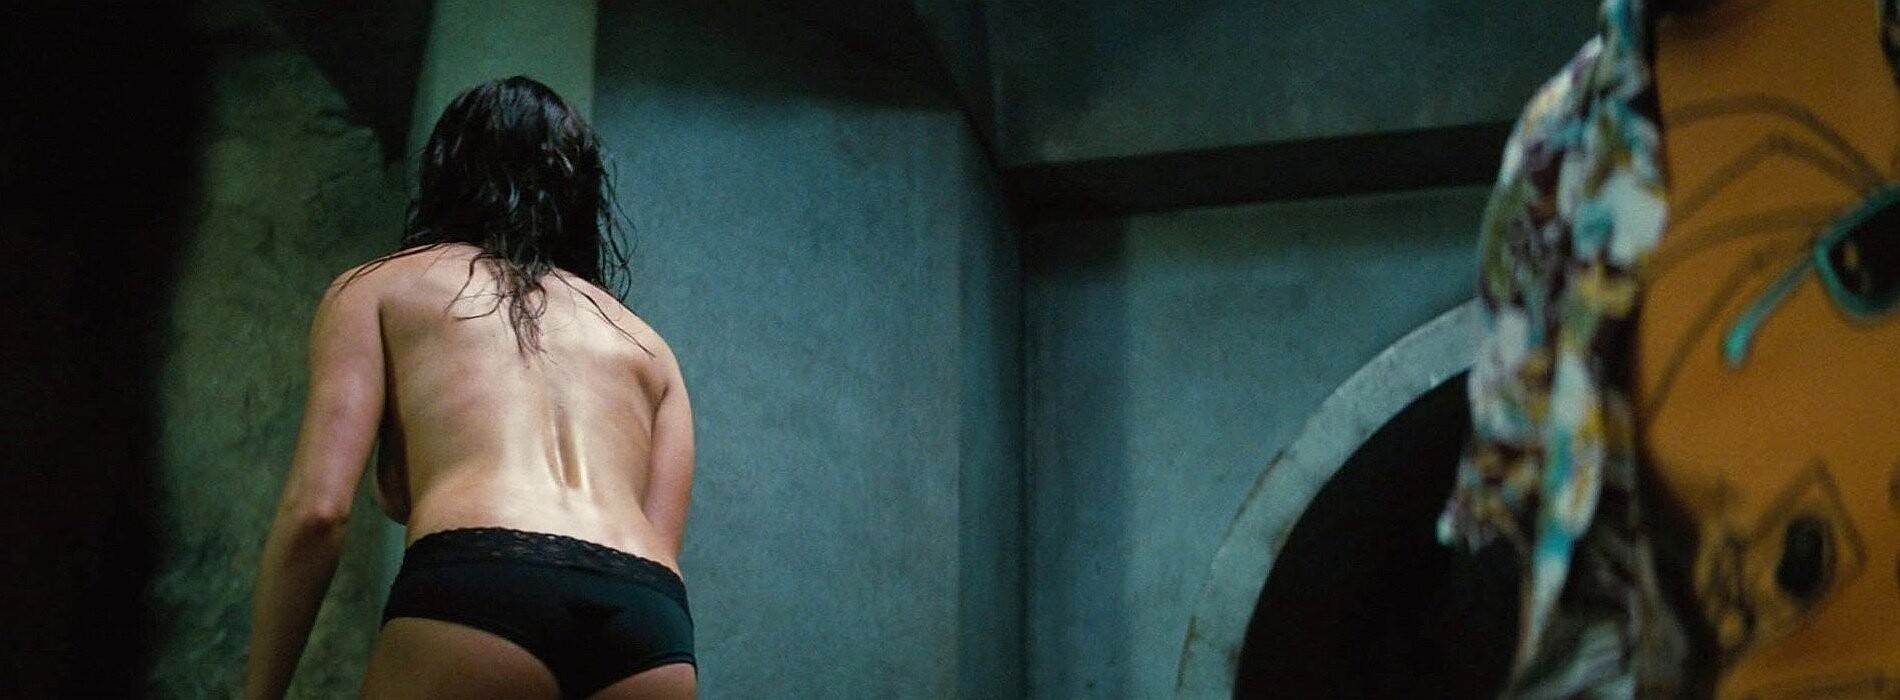 Rebecca Ferguson in Mission Impossible Rogue Nation 2015 fappenings.com 12